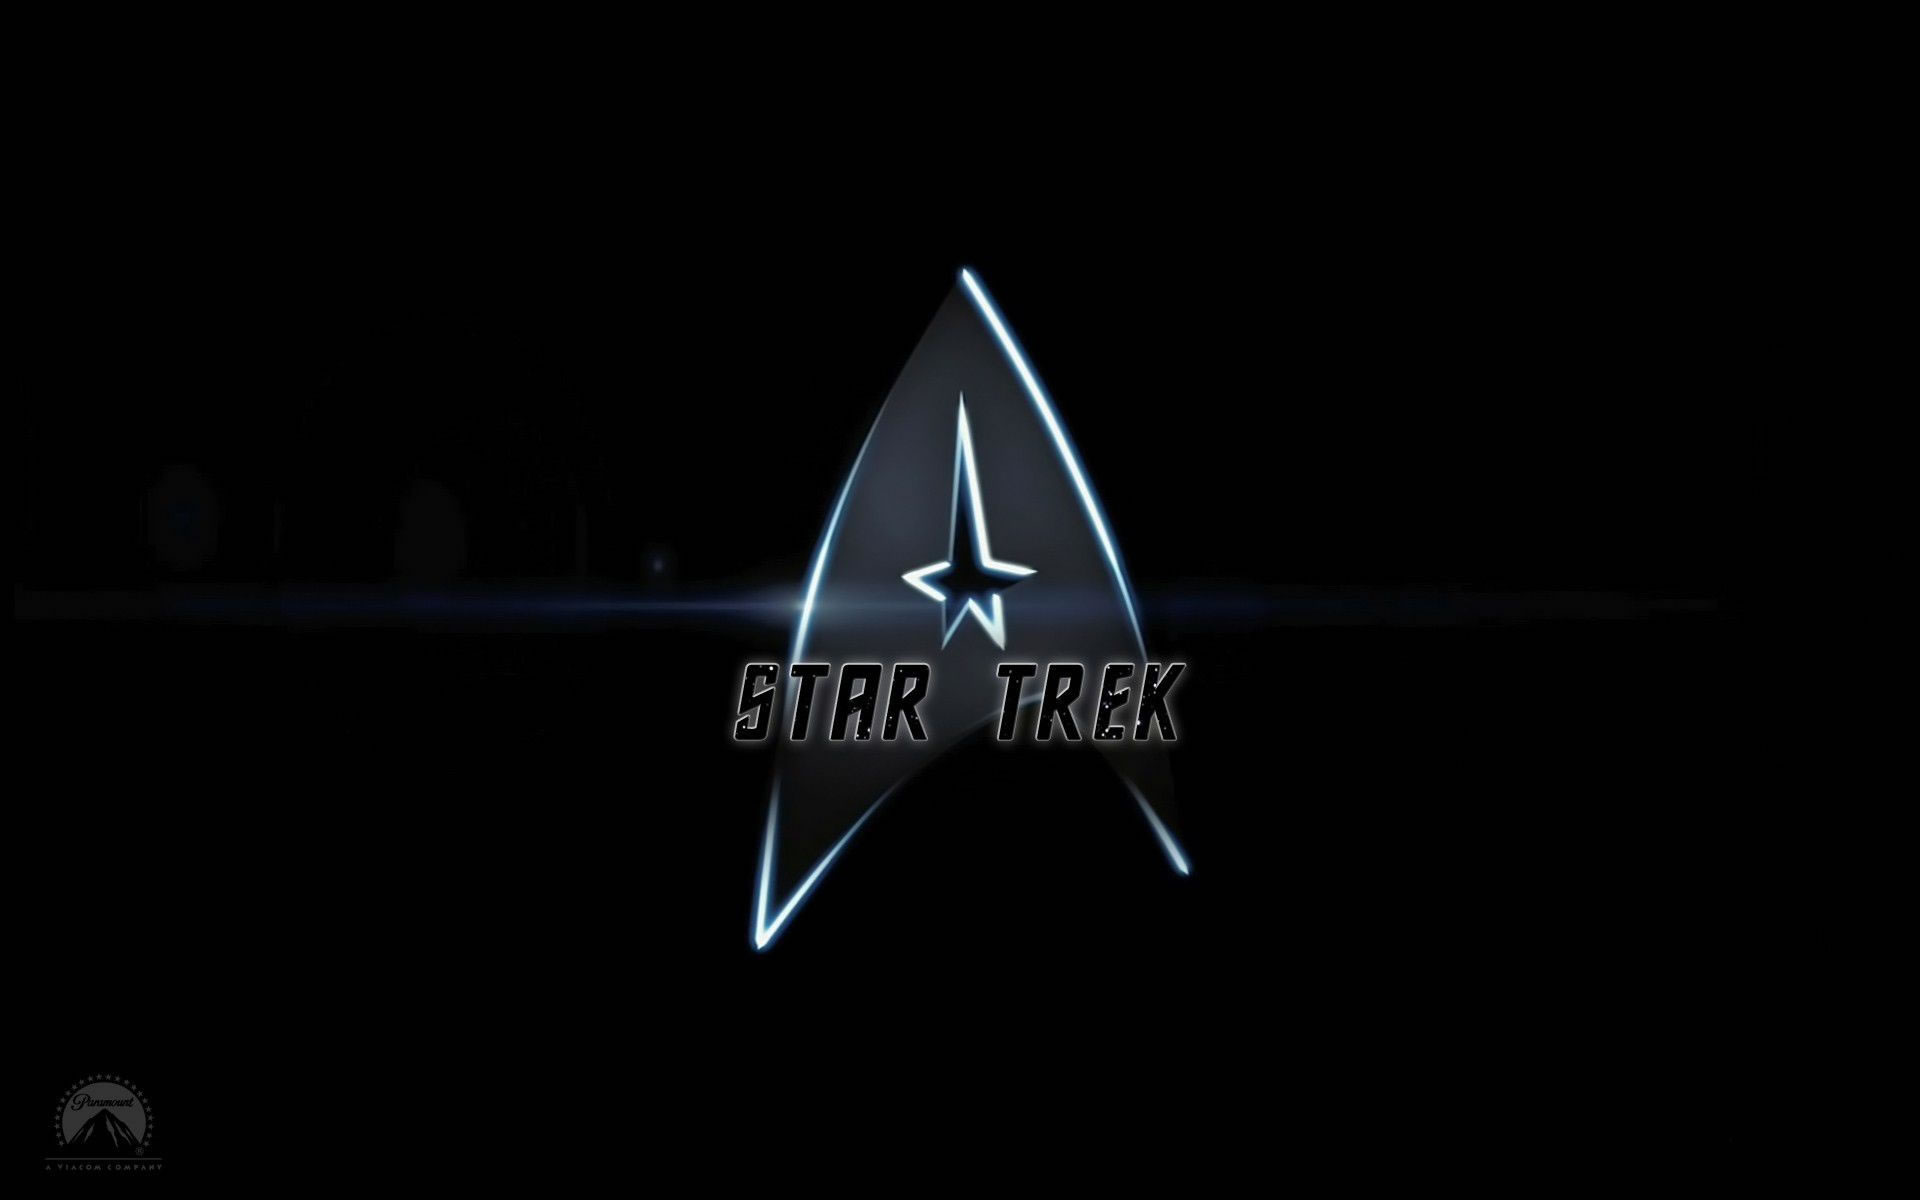 Pin Star-trek-logo-emblem-badge-wallpaper-wallchan on ...